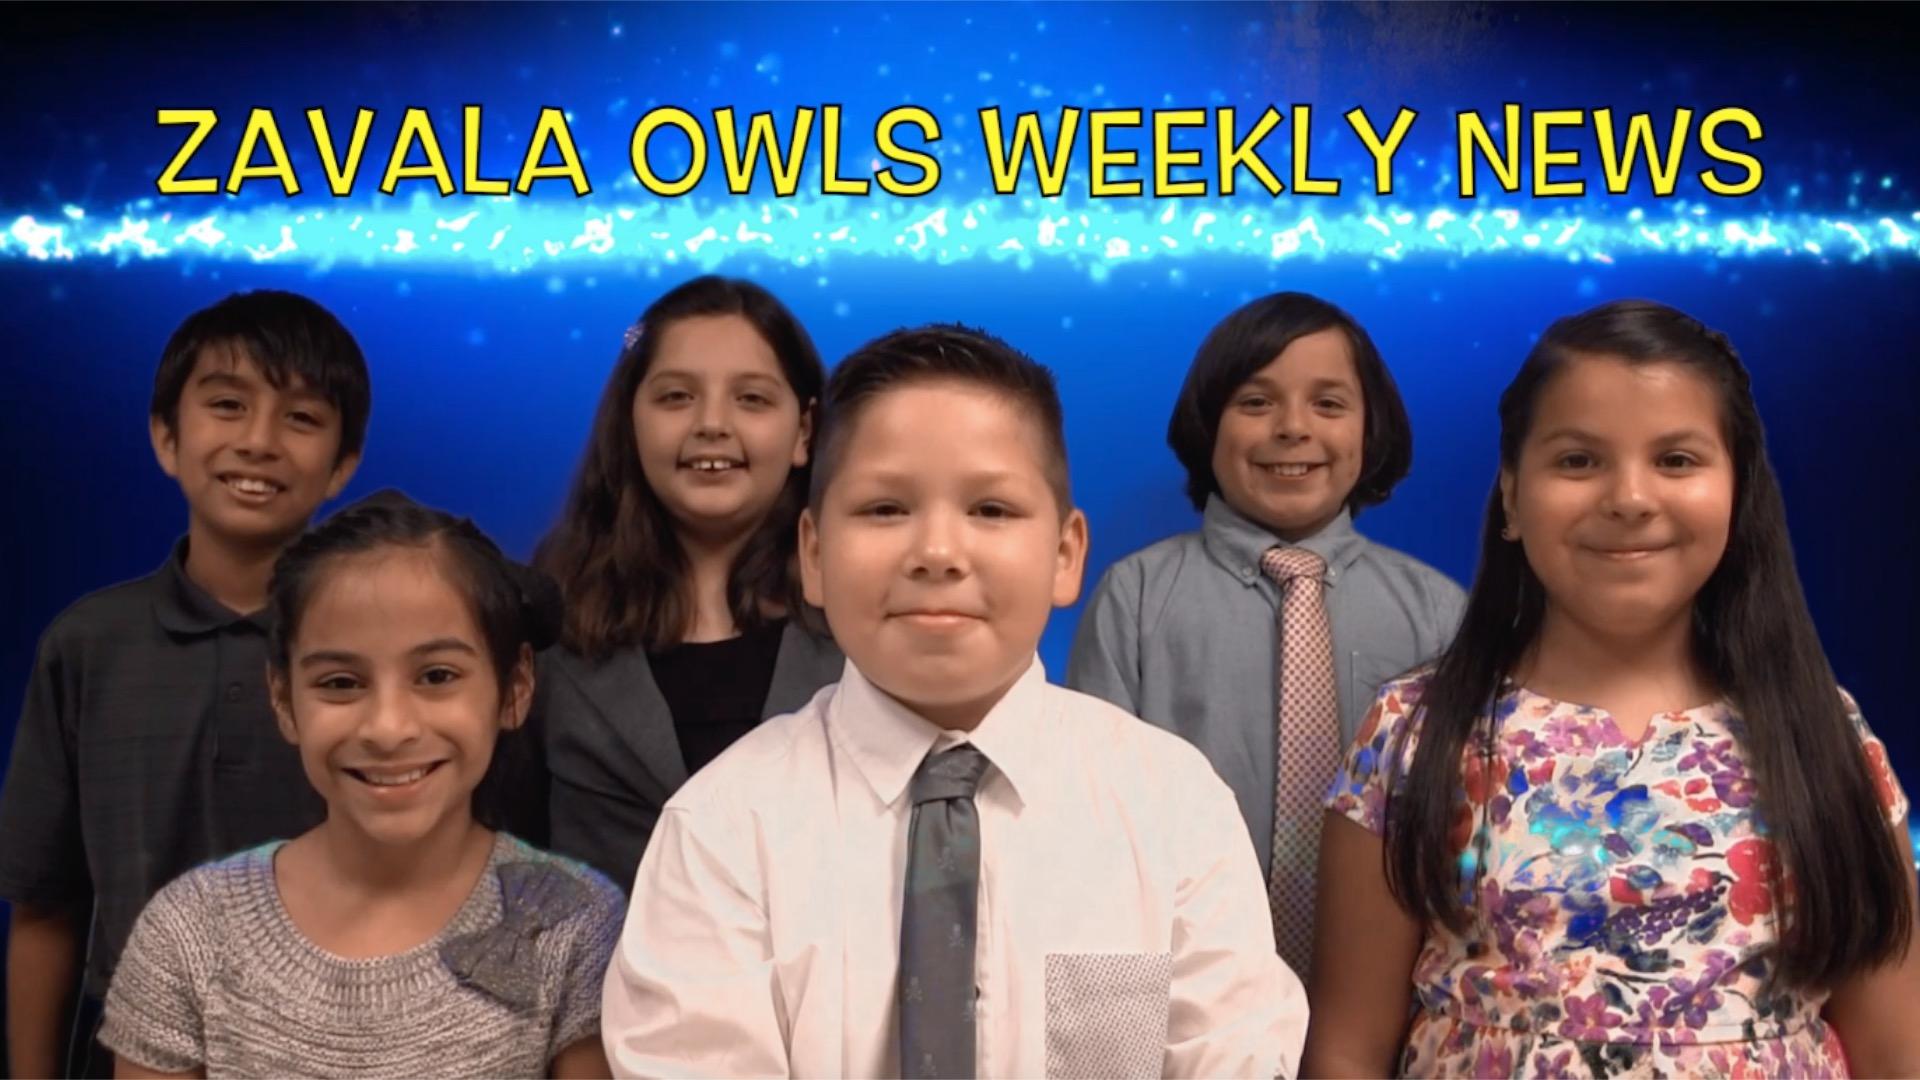 Zavala Elementary takes first place in TASB Student Video Contest